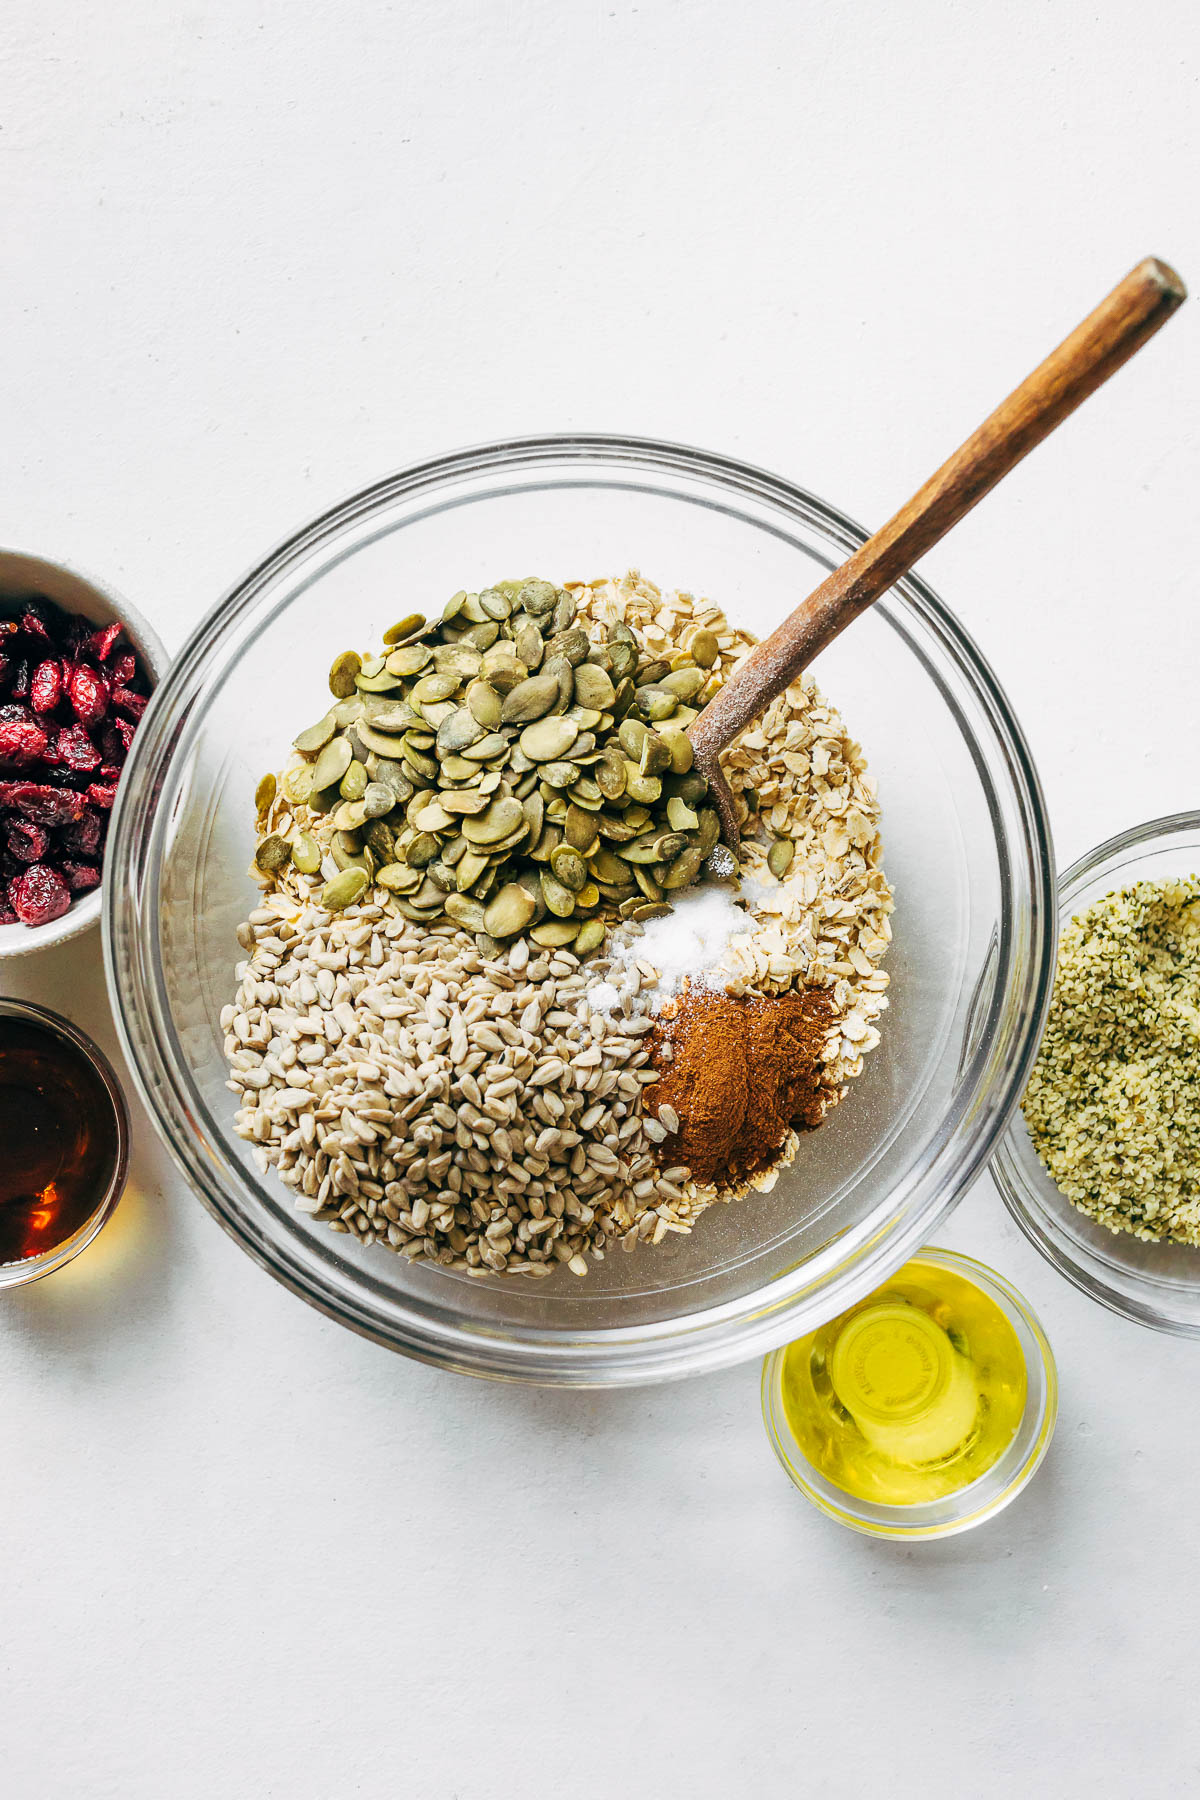 A bowl of oats and seeds.